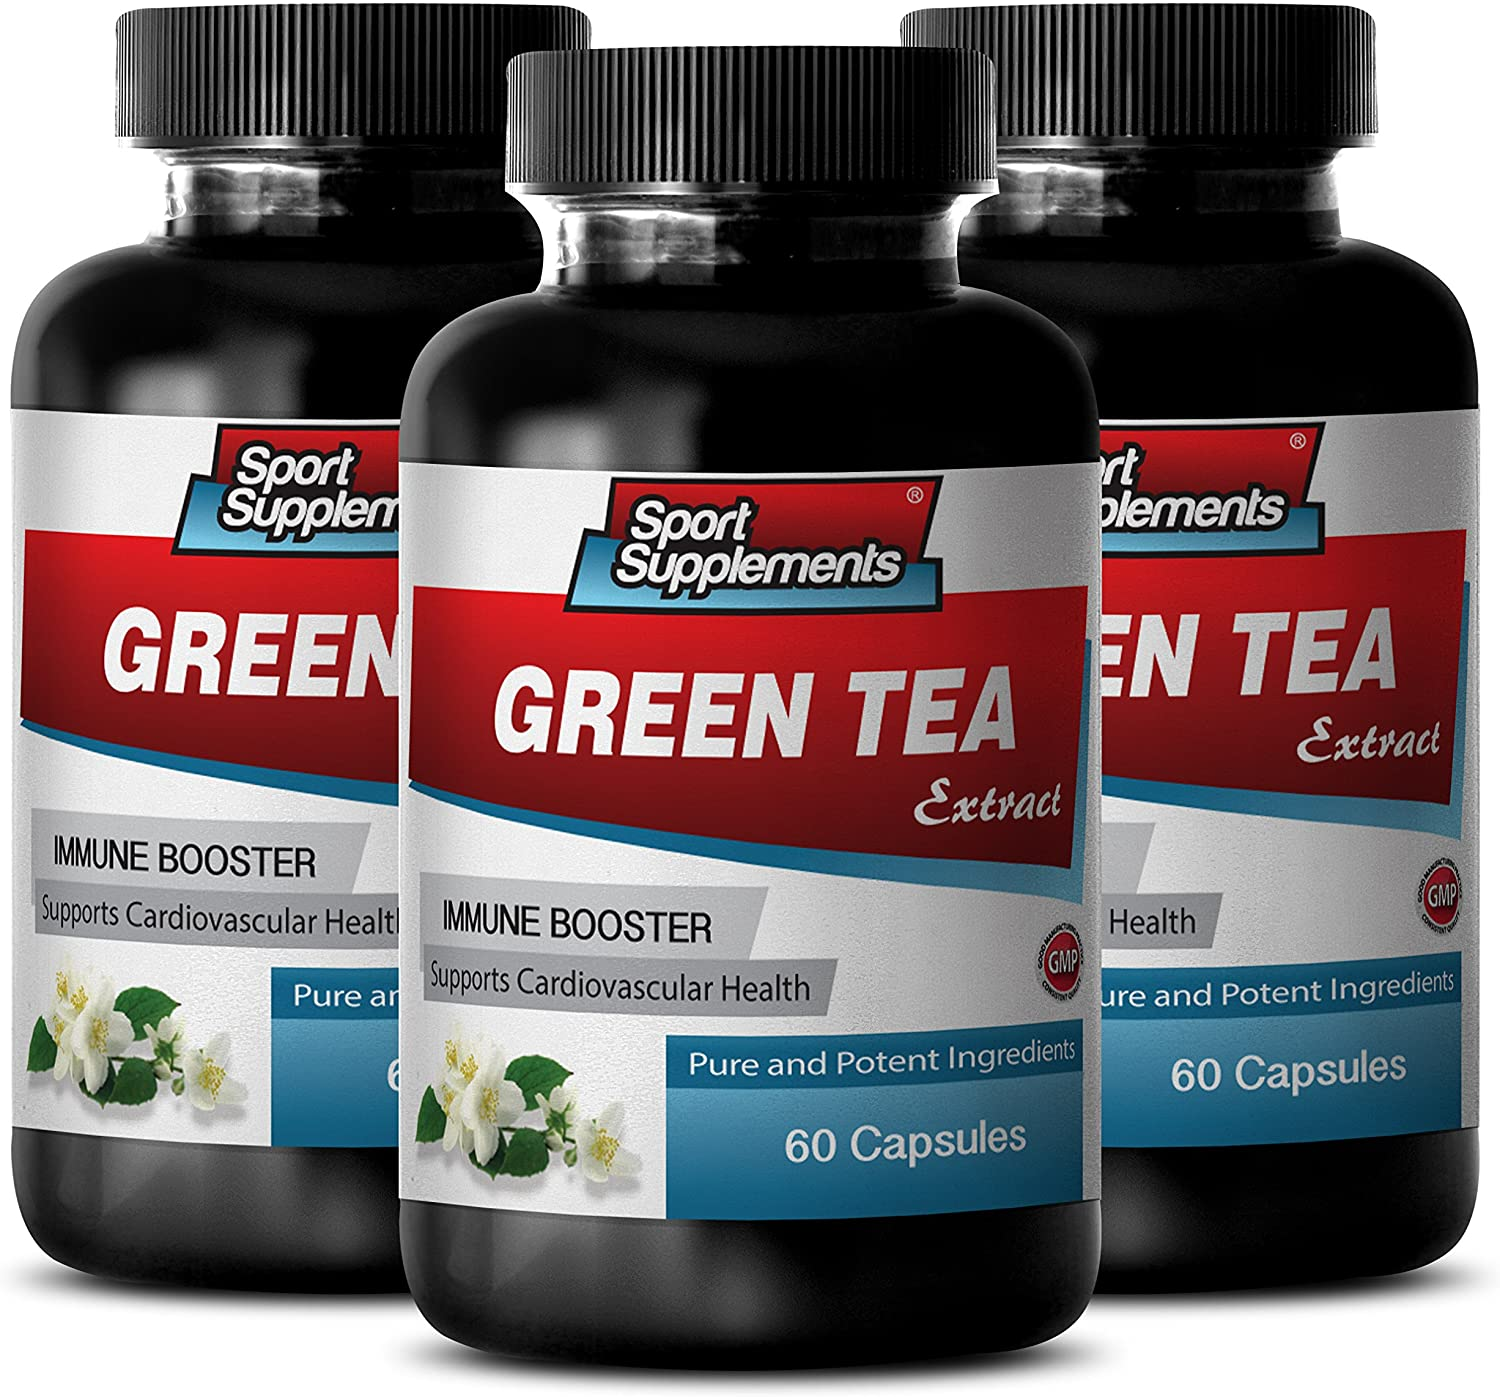 Fat Burner Pills for Men Fast Results - Green Tea Extract (Natural ANTIOXIDANT) 300Mg - Green Tea Fat Burner Dietary Supplement - 3 Bottles 180 Capsules